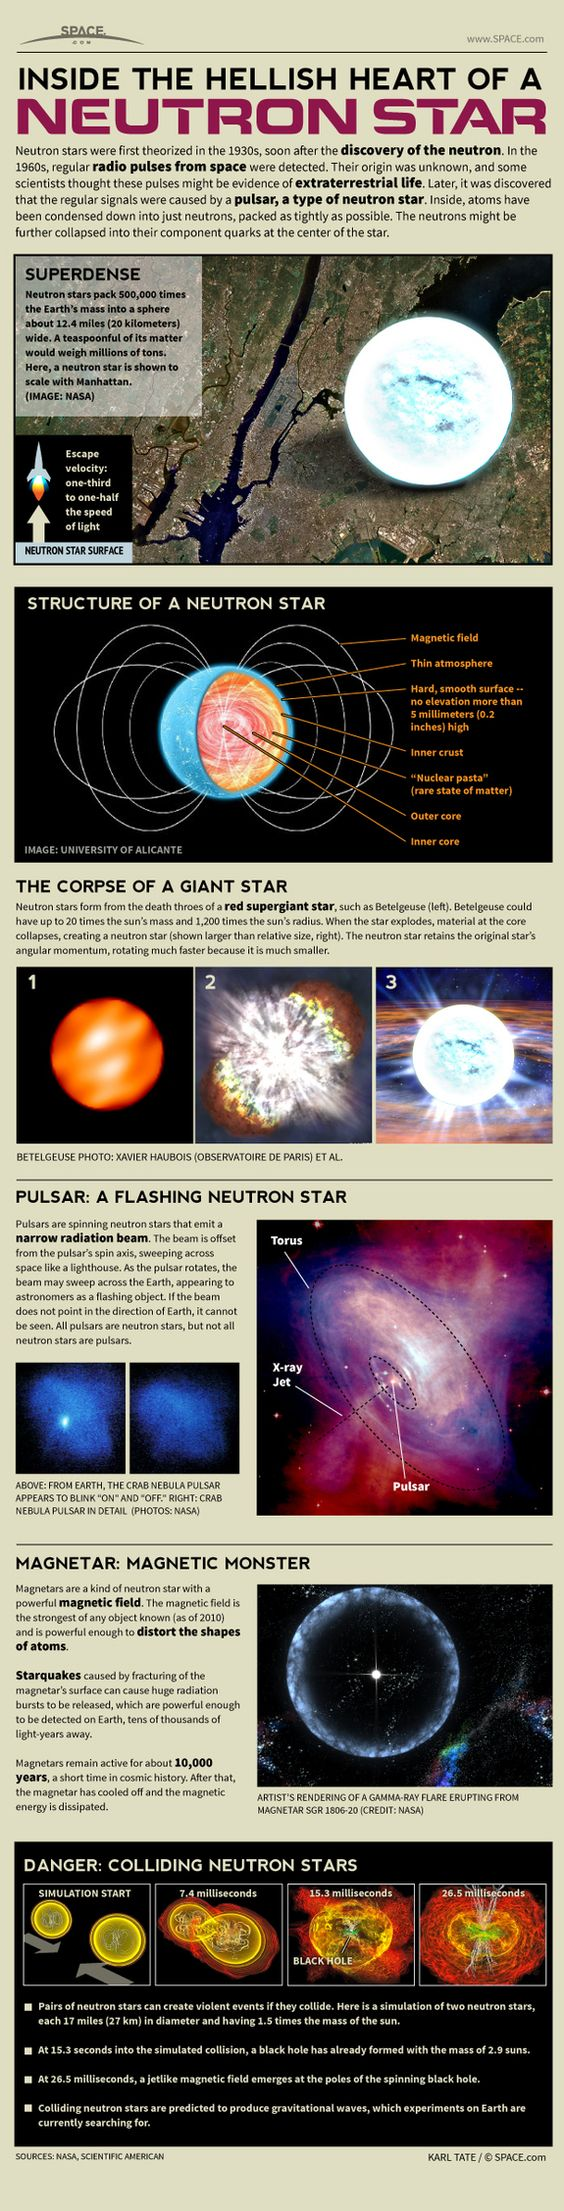 Inside a Neutron Star (Infographic) by Karl Tate, Infographics Artist | July 23, 2013: